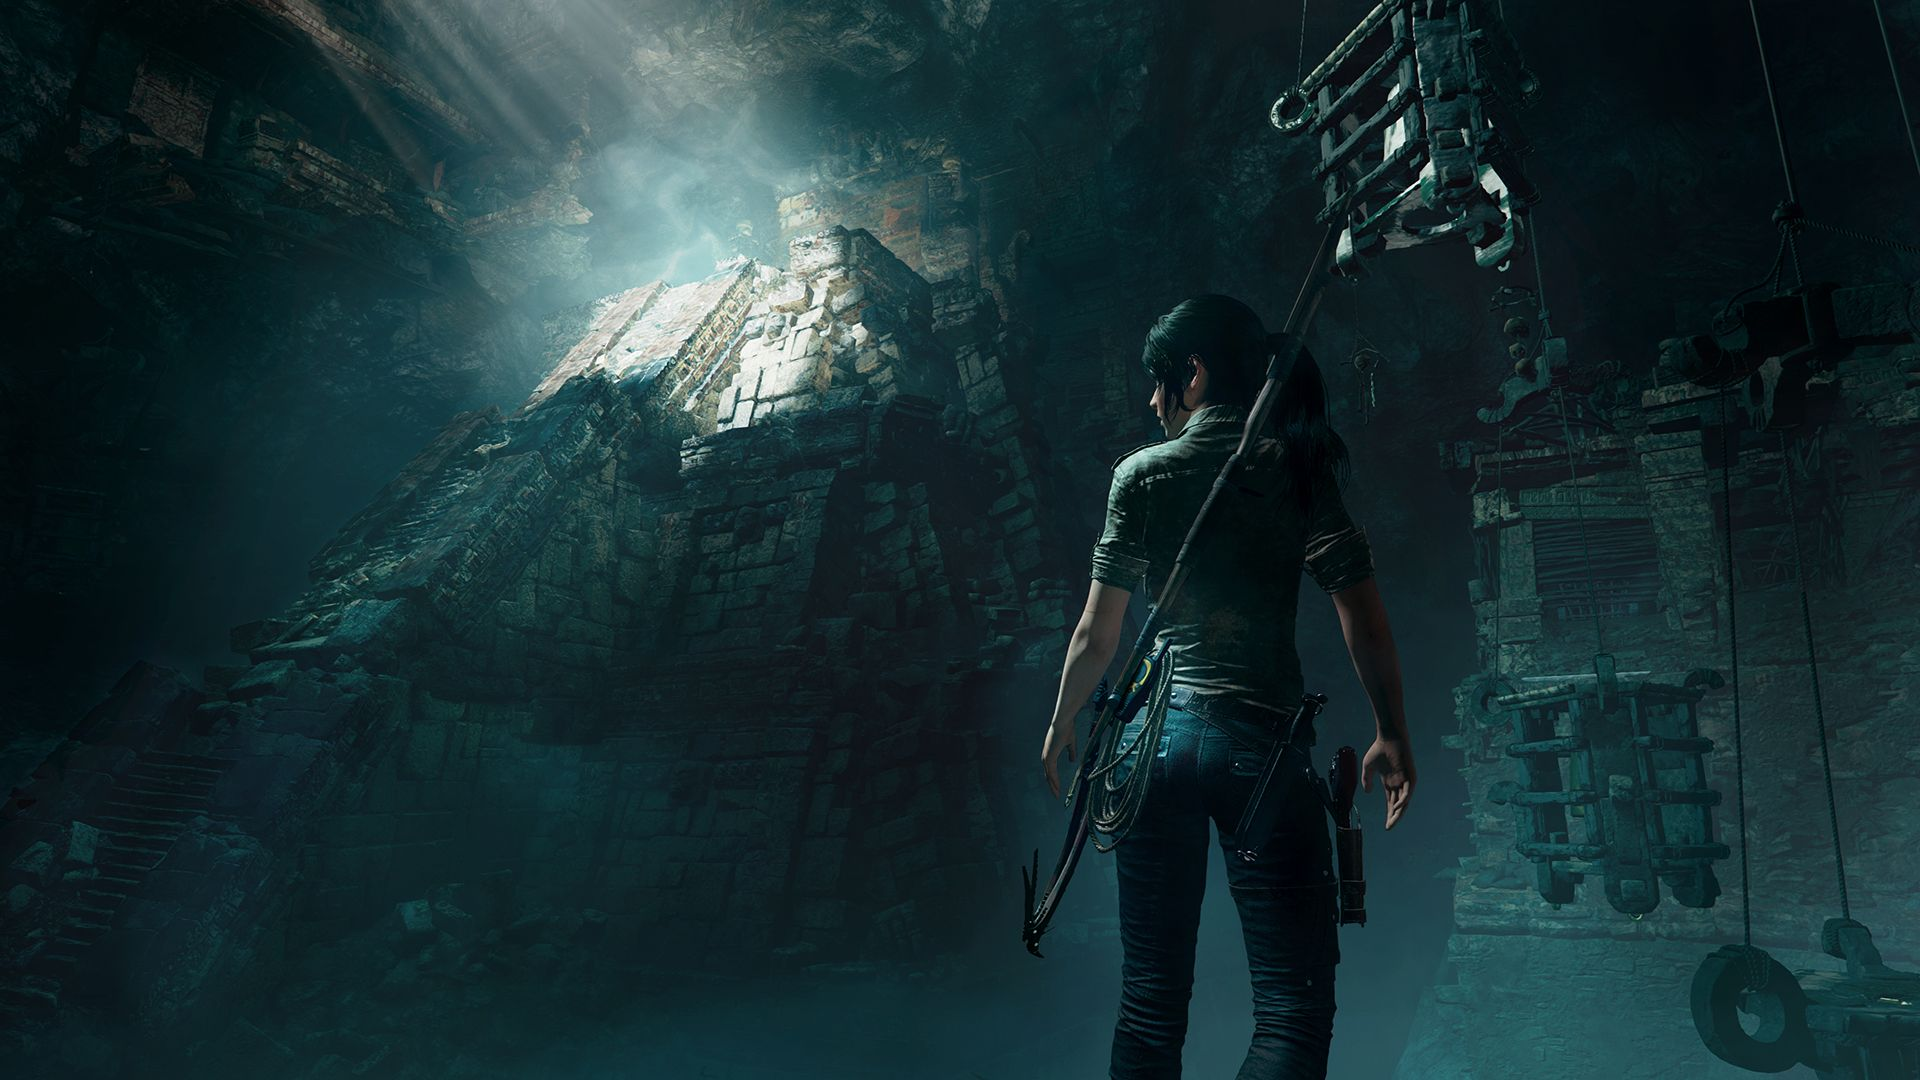 tomb raider 2013 game free download full version for pc kickass